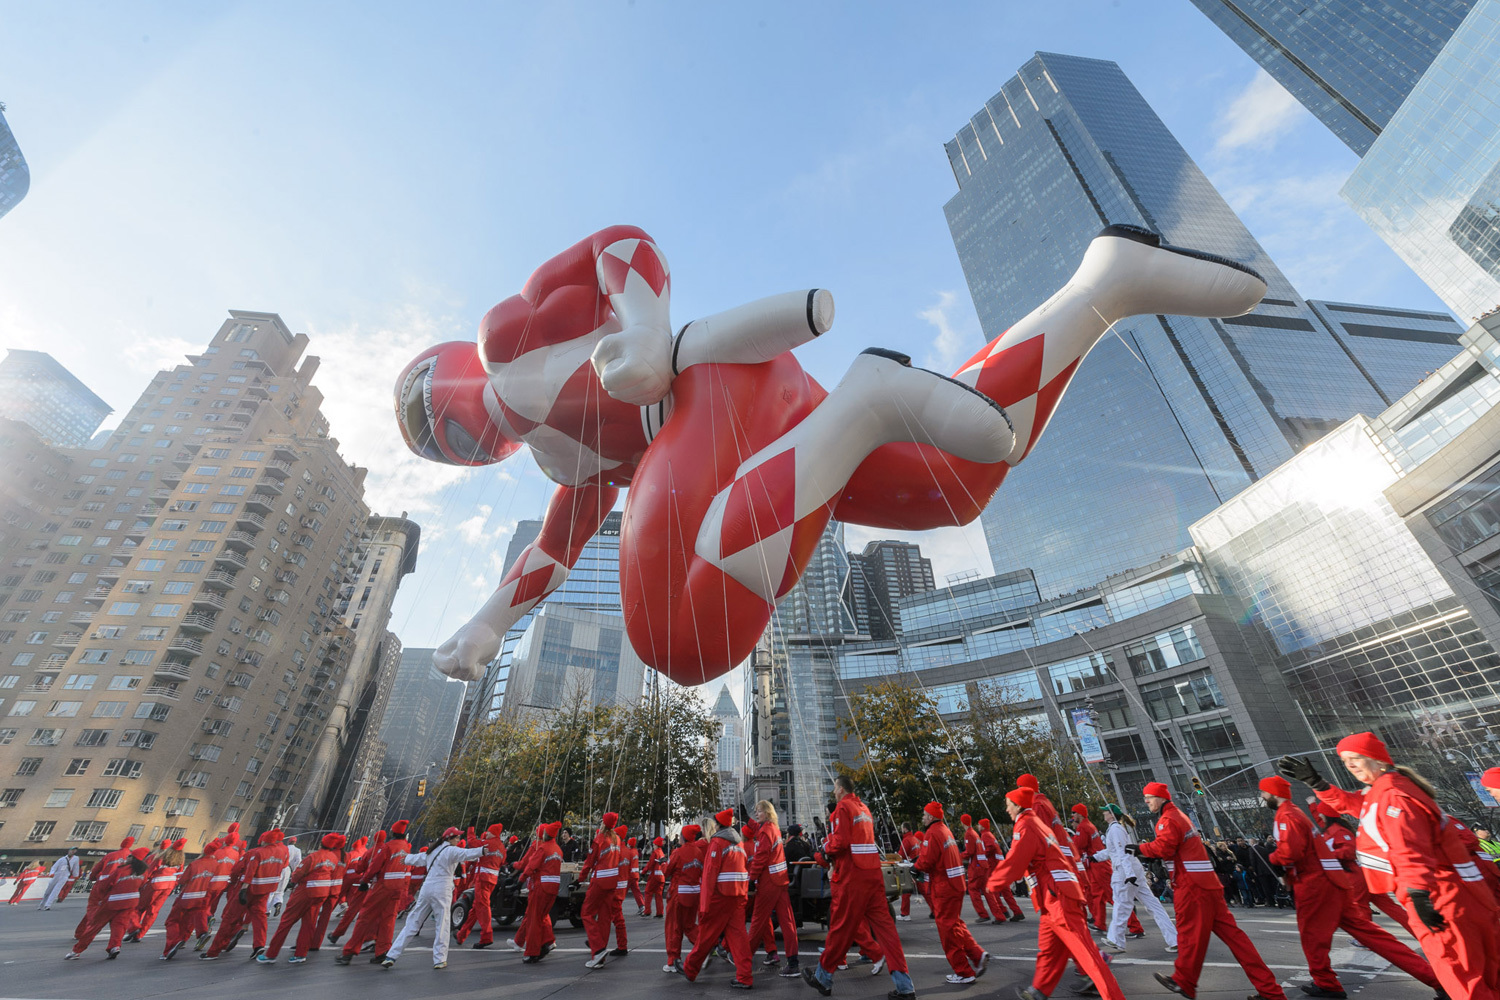 Macy's Thanksgiving Day Parade 2015